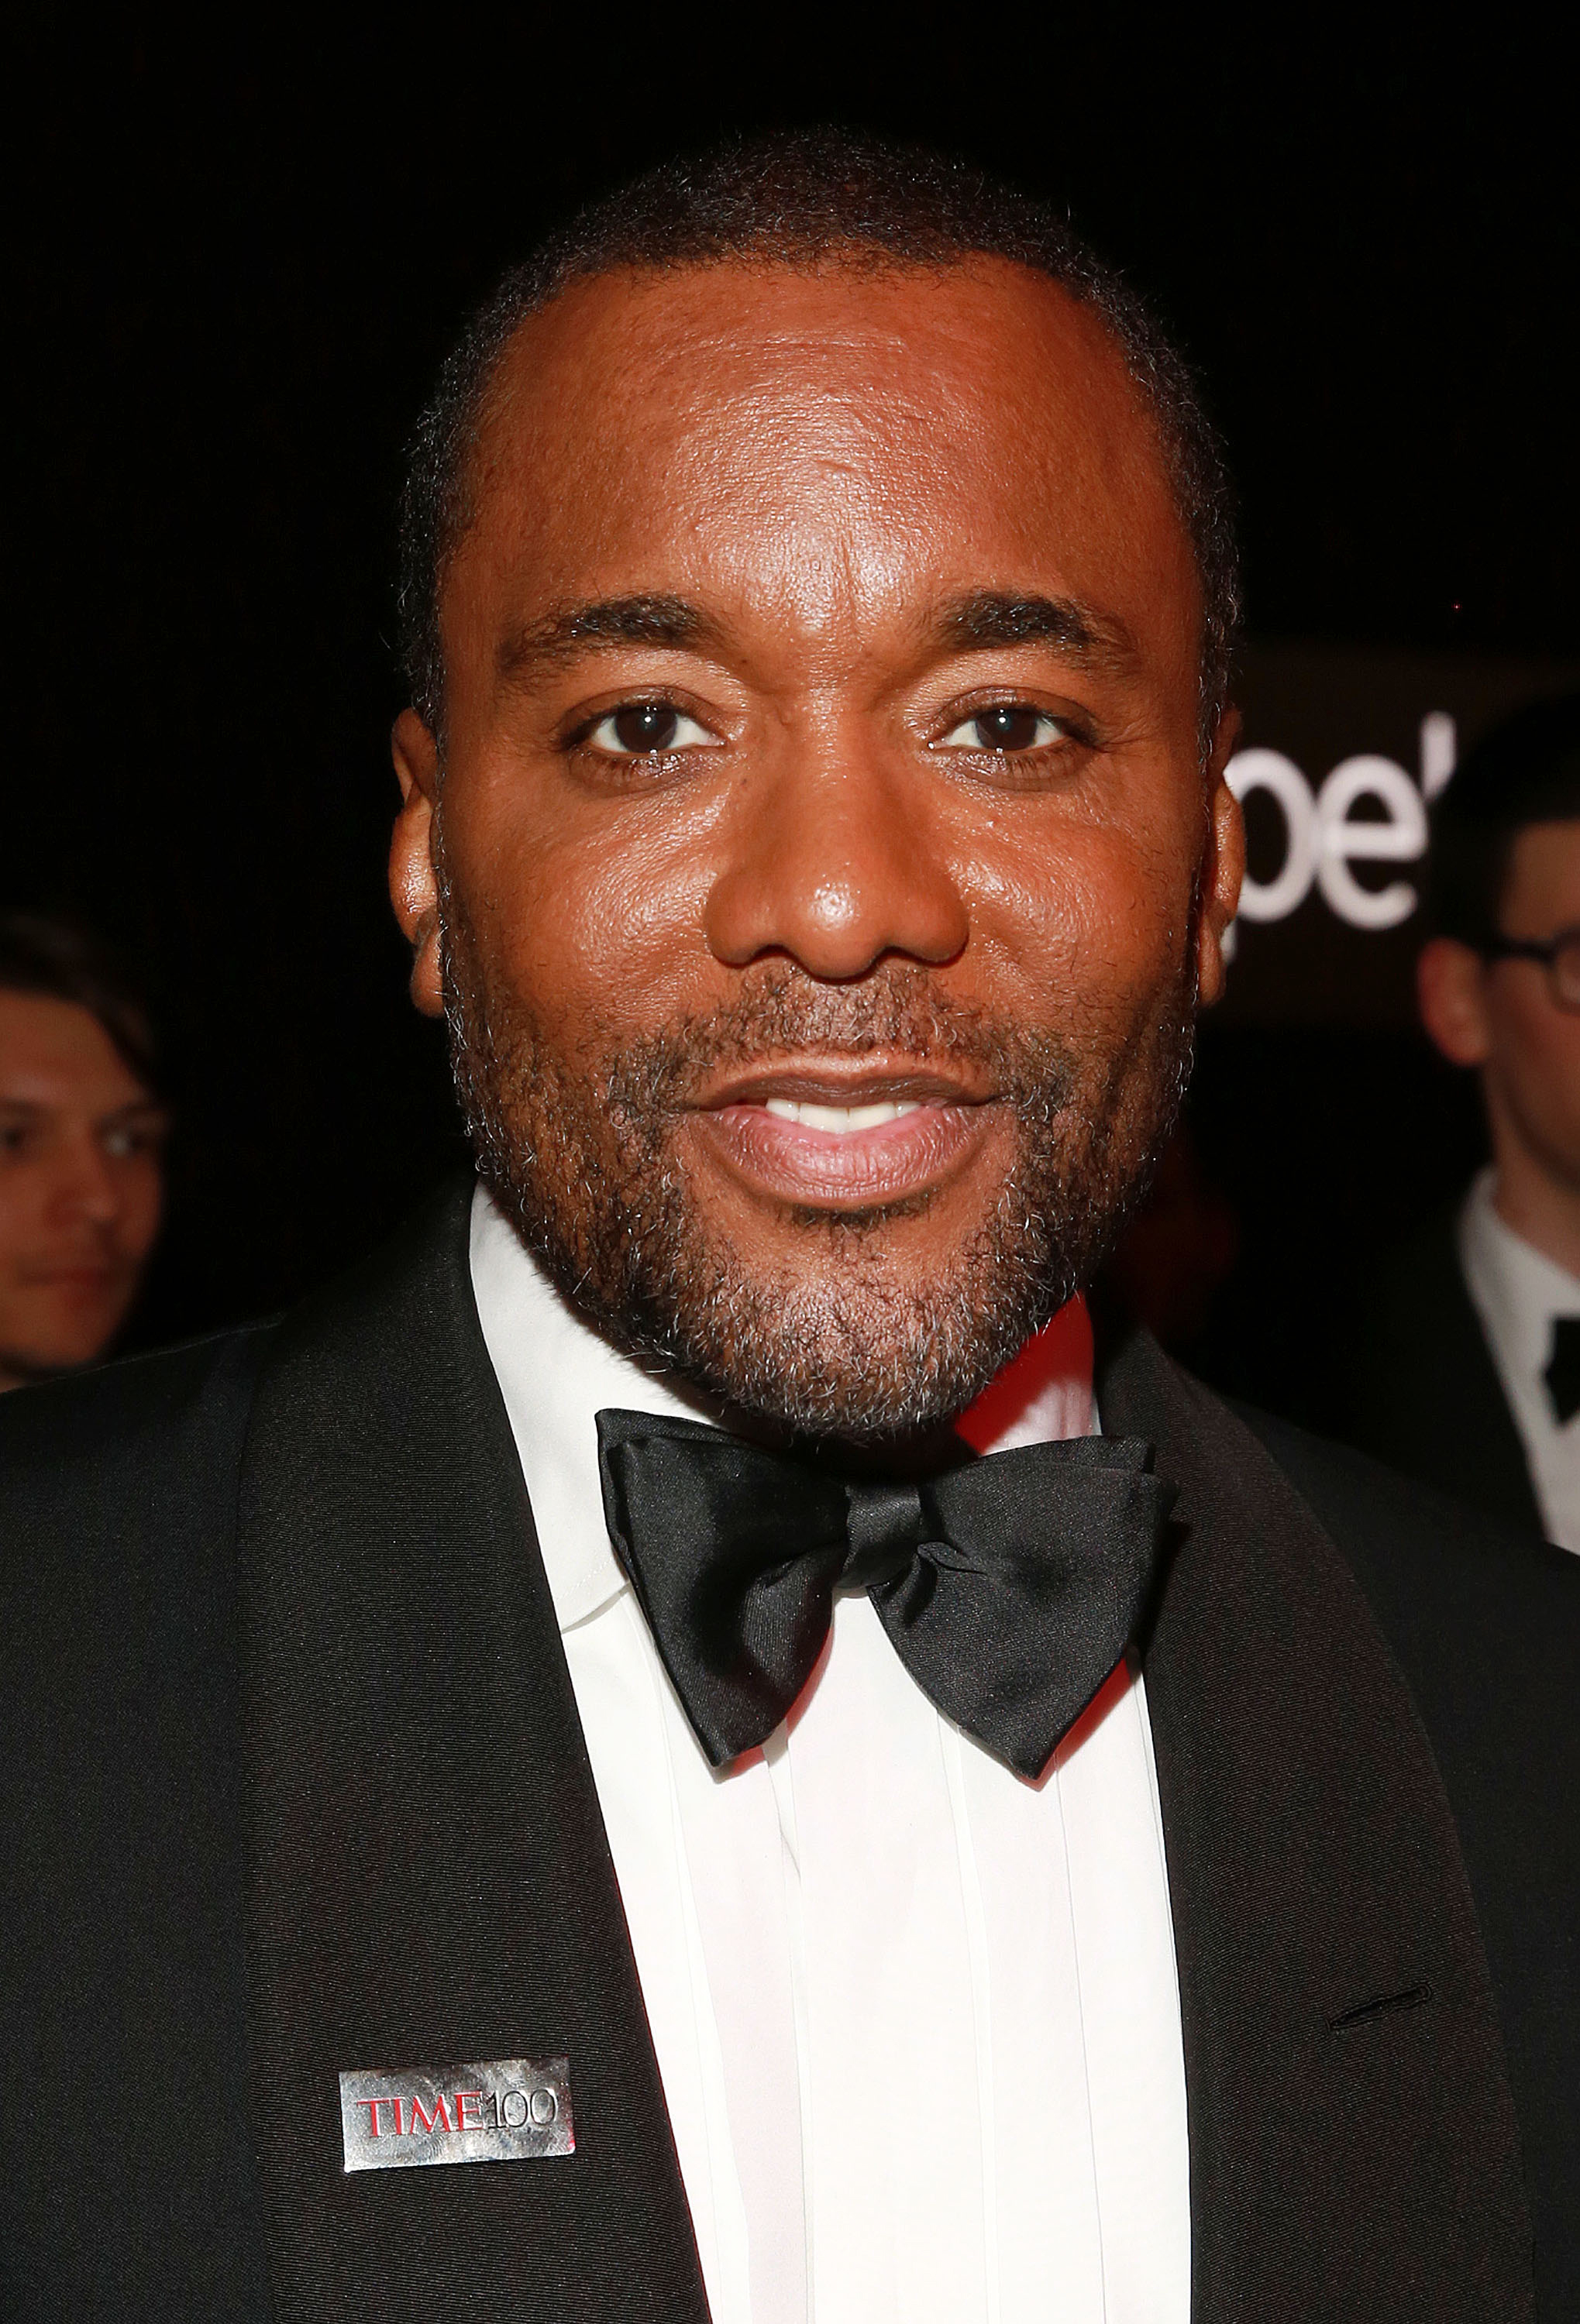 Lee Daniels attends the 2015 TIME 100 Gala cocktail reception, to celebrate the 100 most influential people in the world, at the Frederick P. Rose Hall, Time Warner Center on April 21, 2015, in New York.